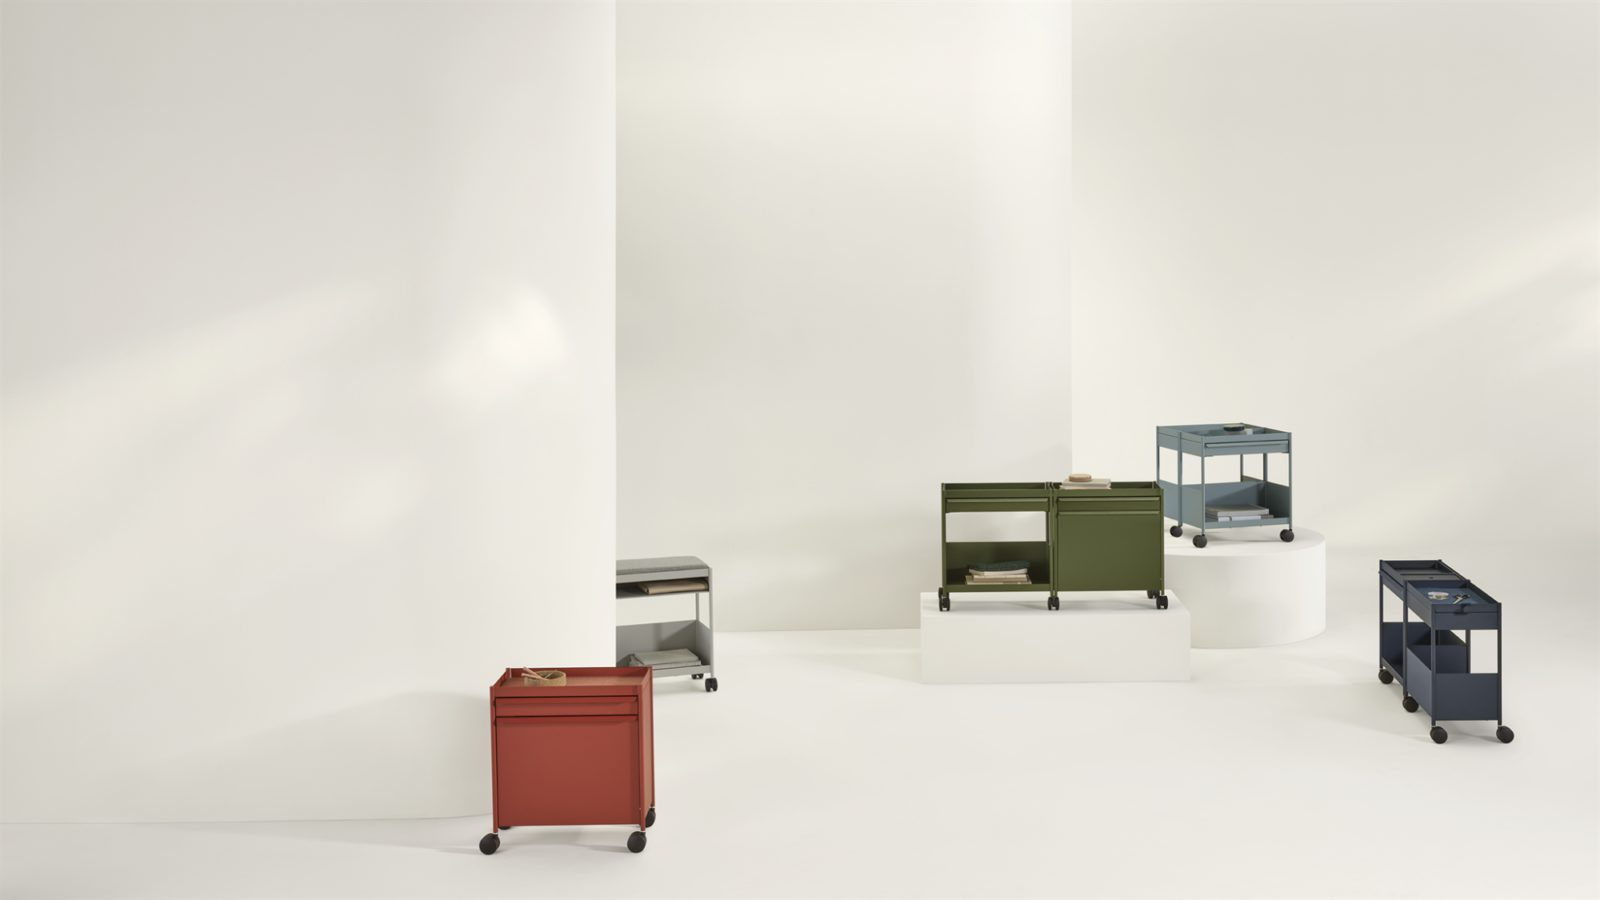 OE1 Storage Trolleys in different colors and configurations spread around a room with white walls, white columns, and a white floor.